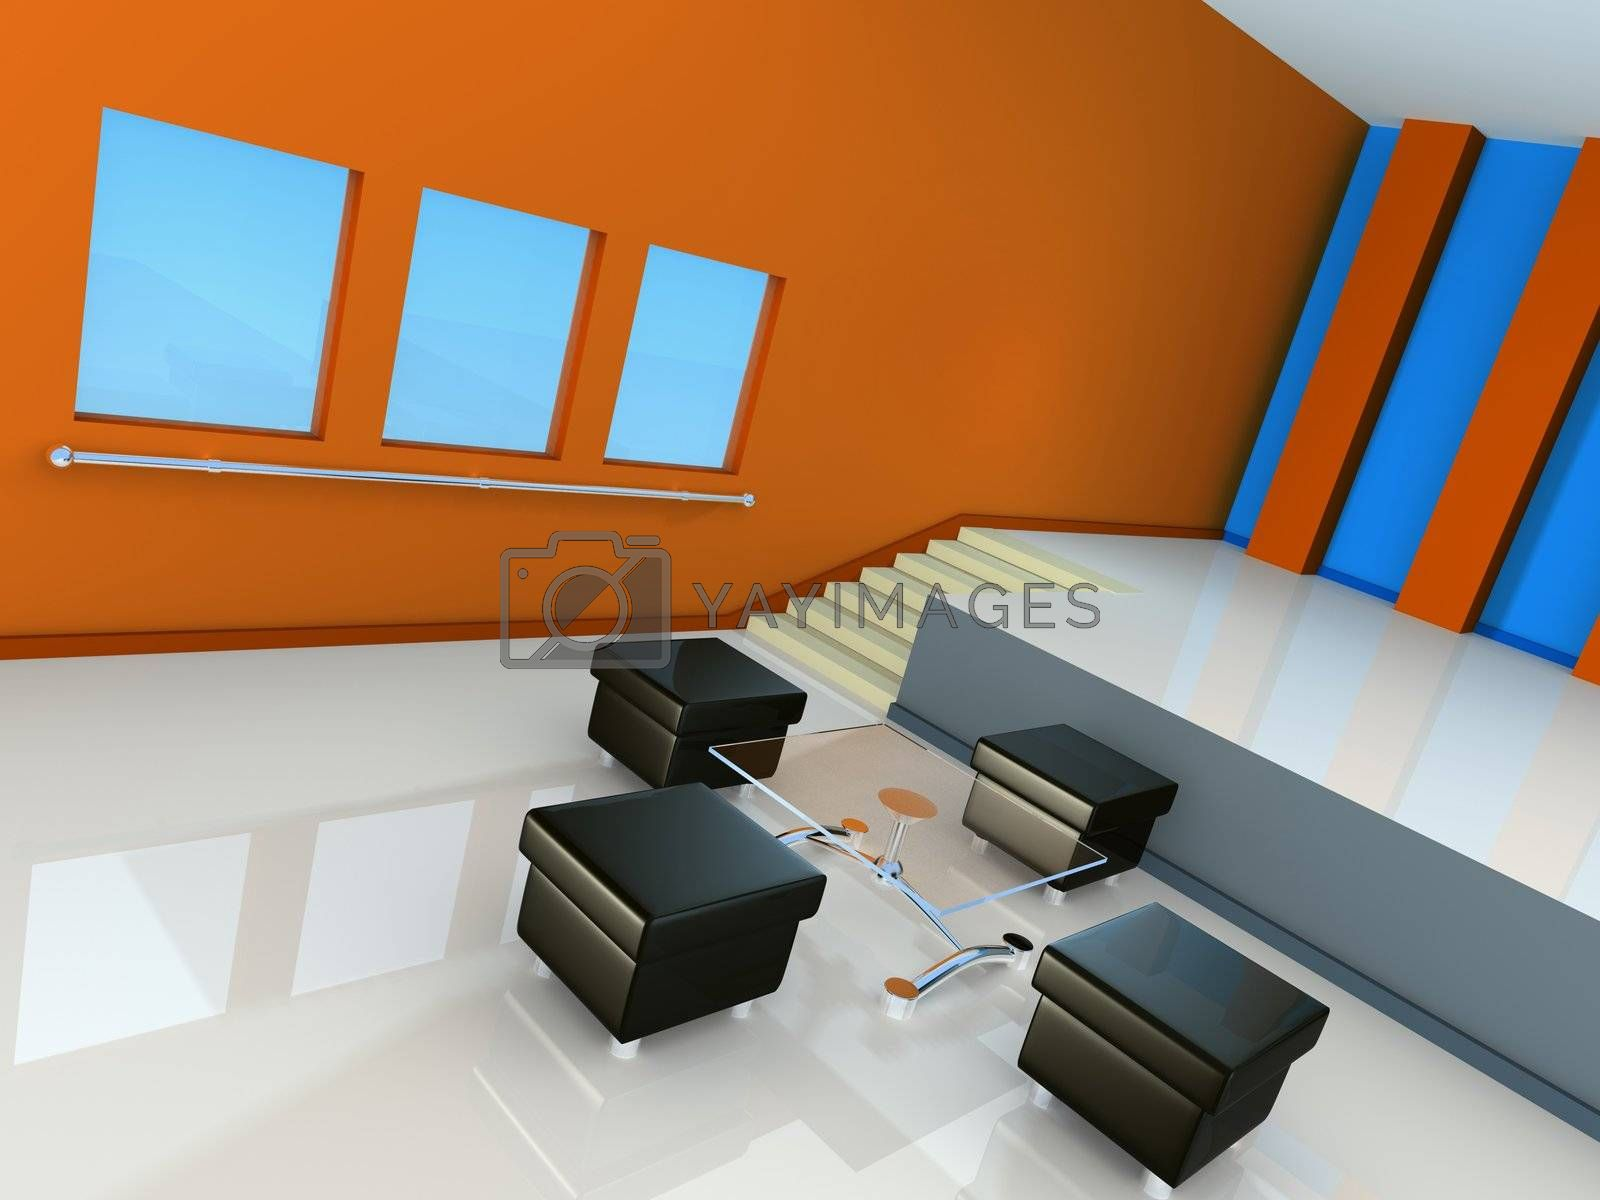 Royalty free image of Modern Interior by 3pod